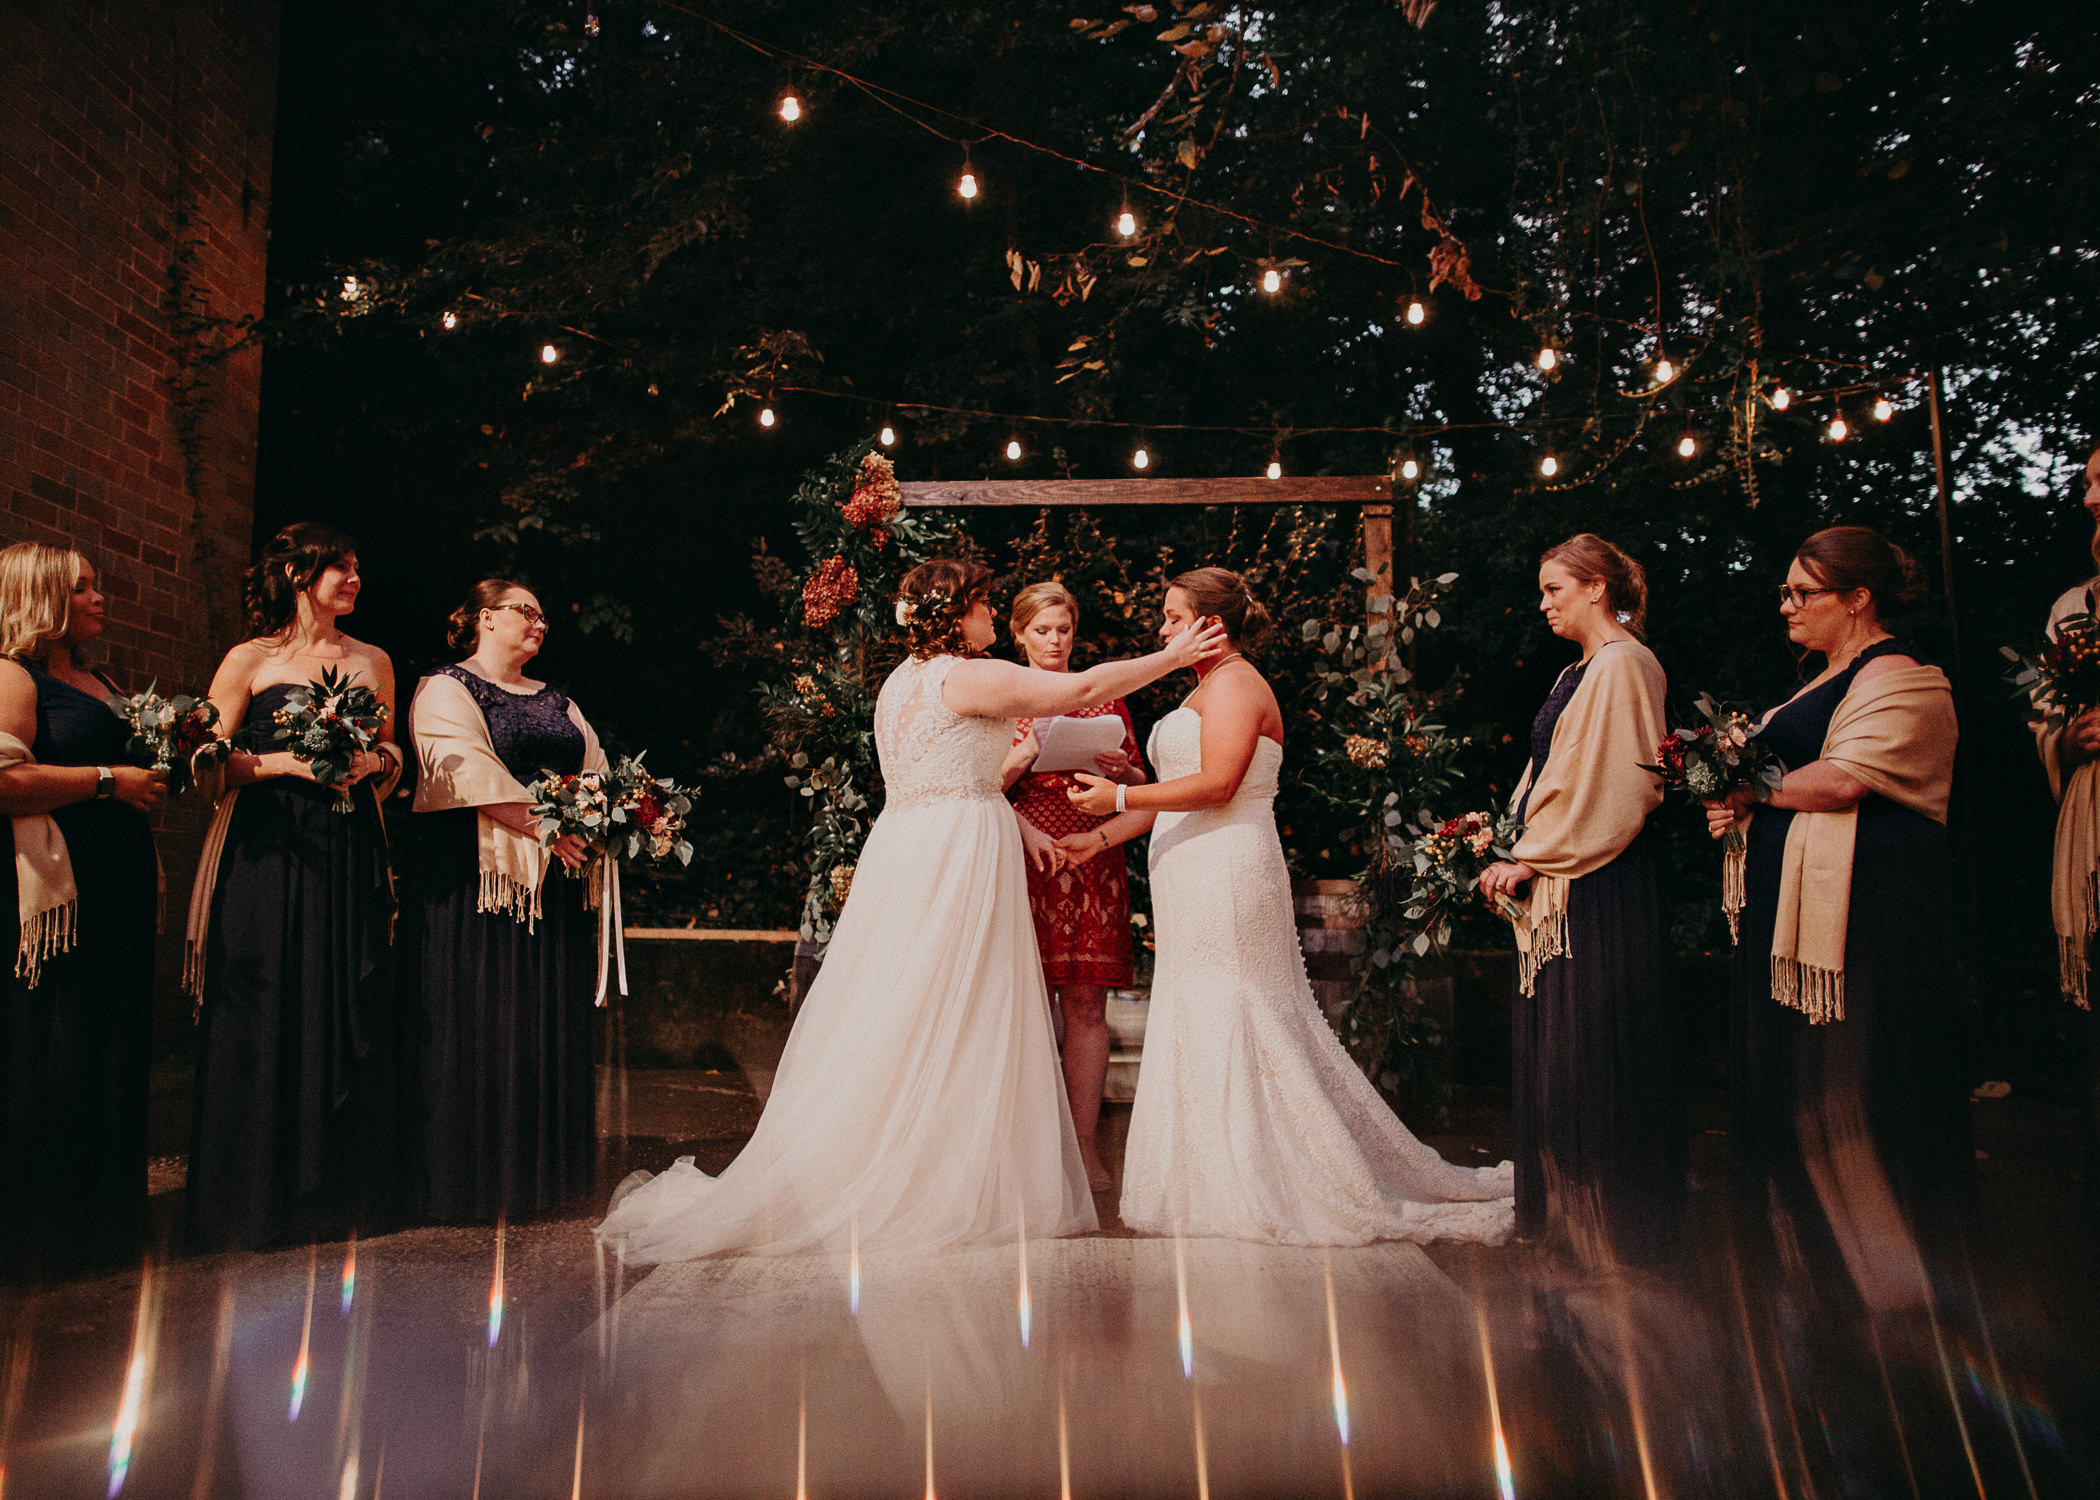 98 - Atlanta wedding photographer - Same sex wedding - wedding dress - details - ceremony - reception - bridal party - two brides. Aline Marin Photography .jpg.JPG